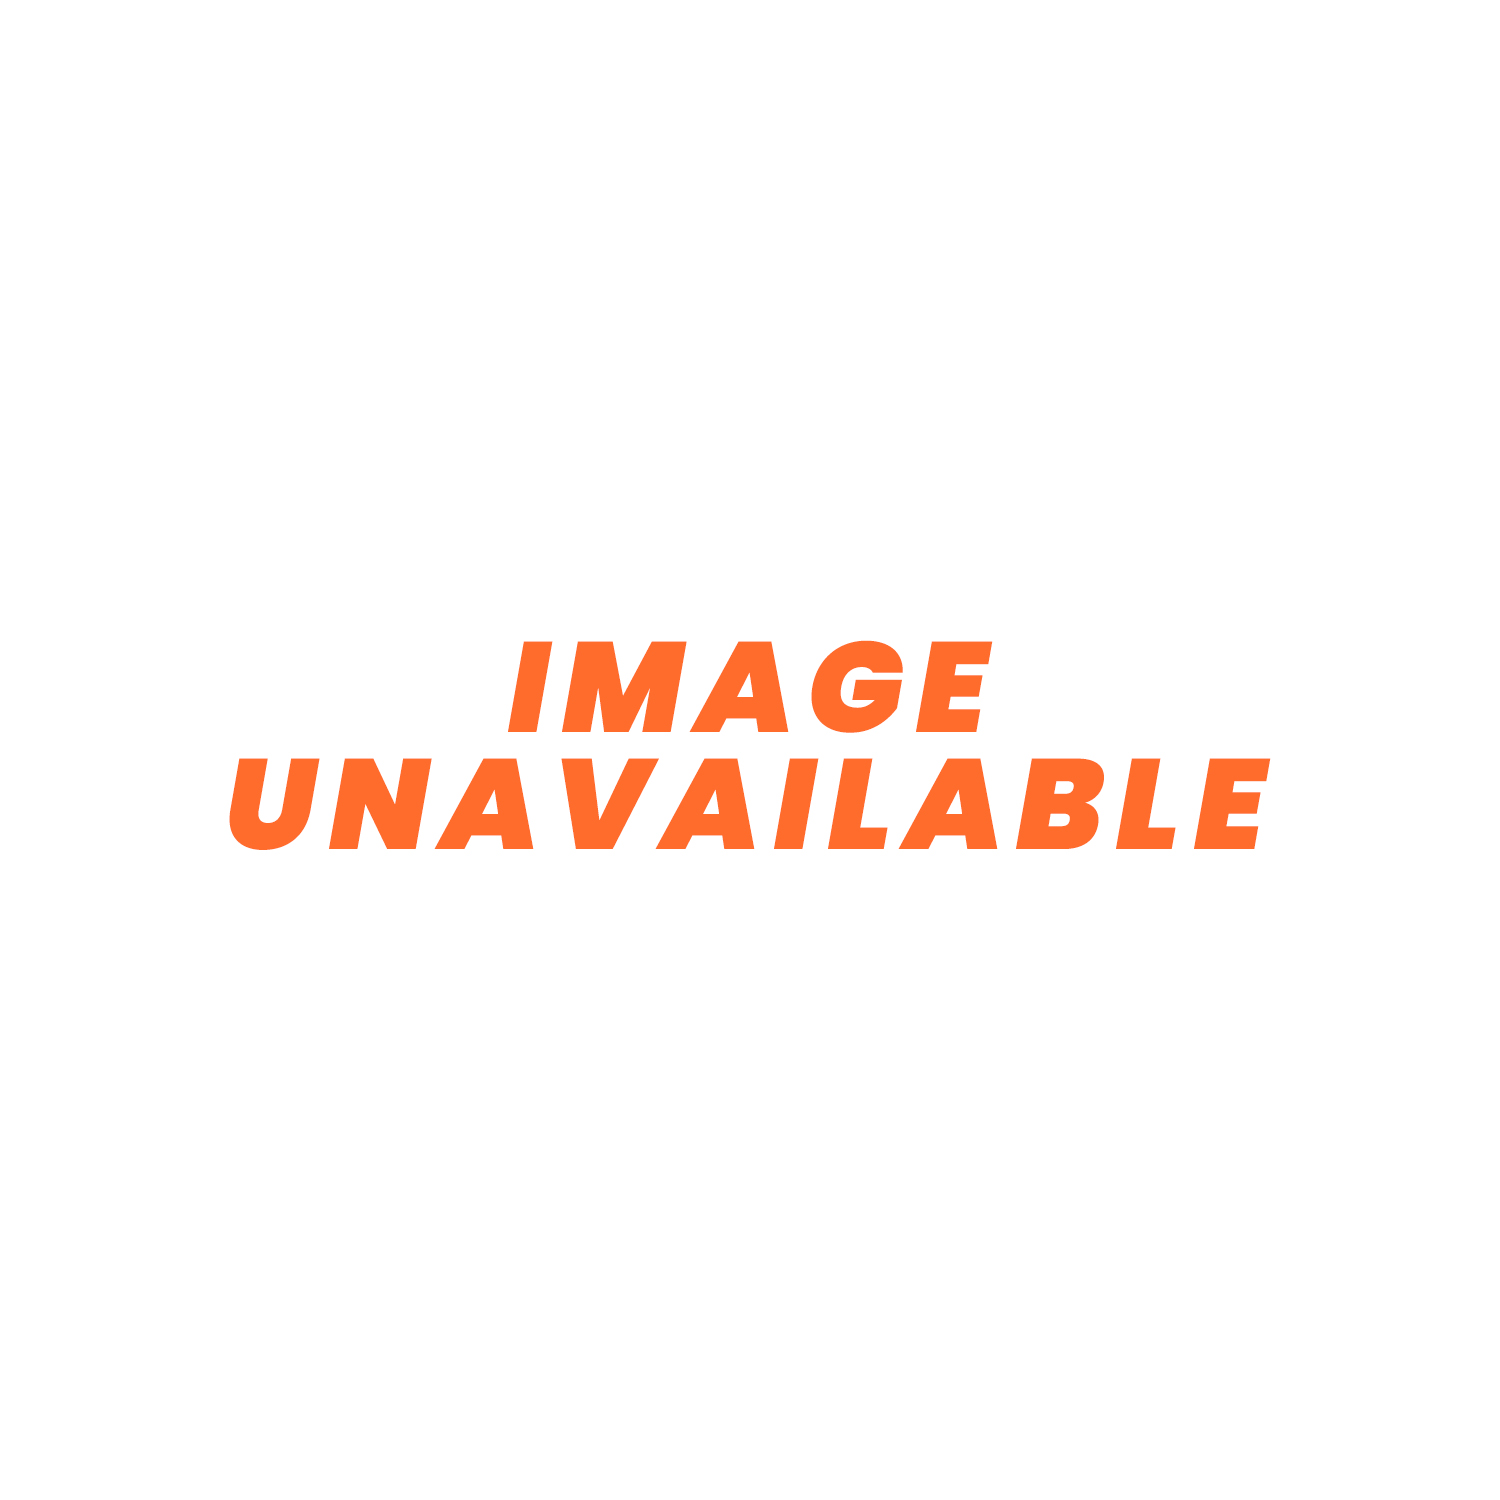 Spal Fan Wiring Diagram Spal Brushless Fan Wiring Diagram